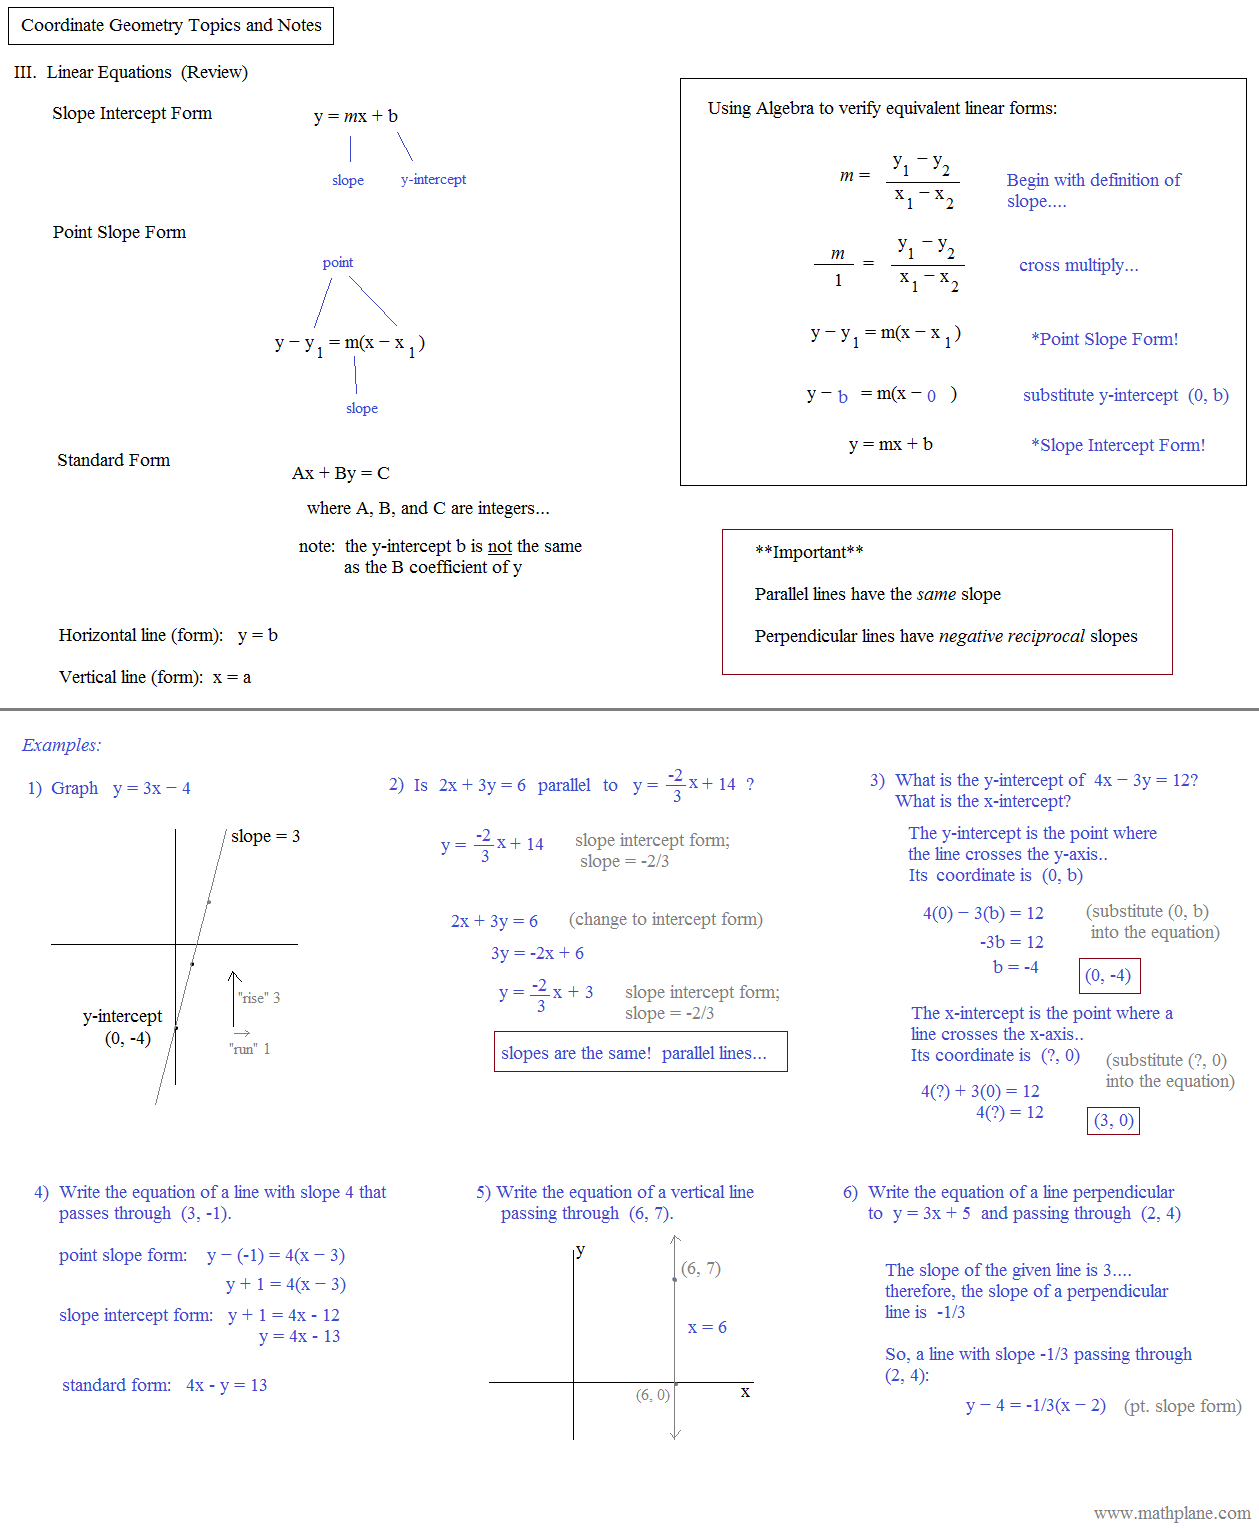 Math plane linear equations coordinate geometry review notes coordinate geometry review notes 2 falaconquin